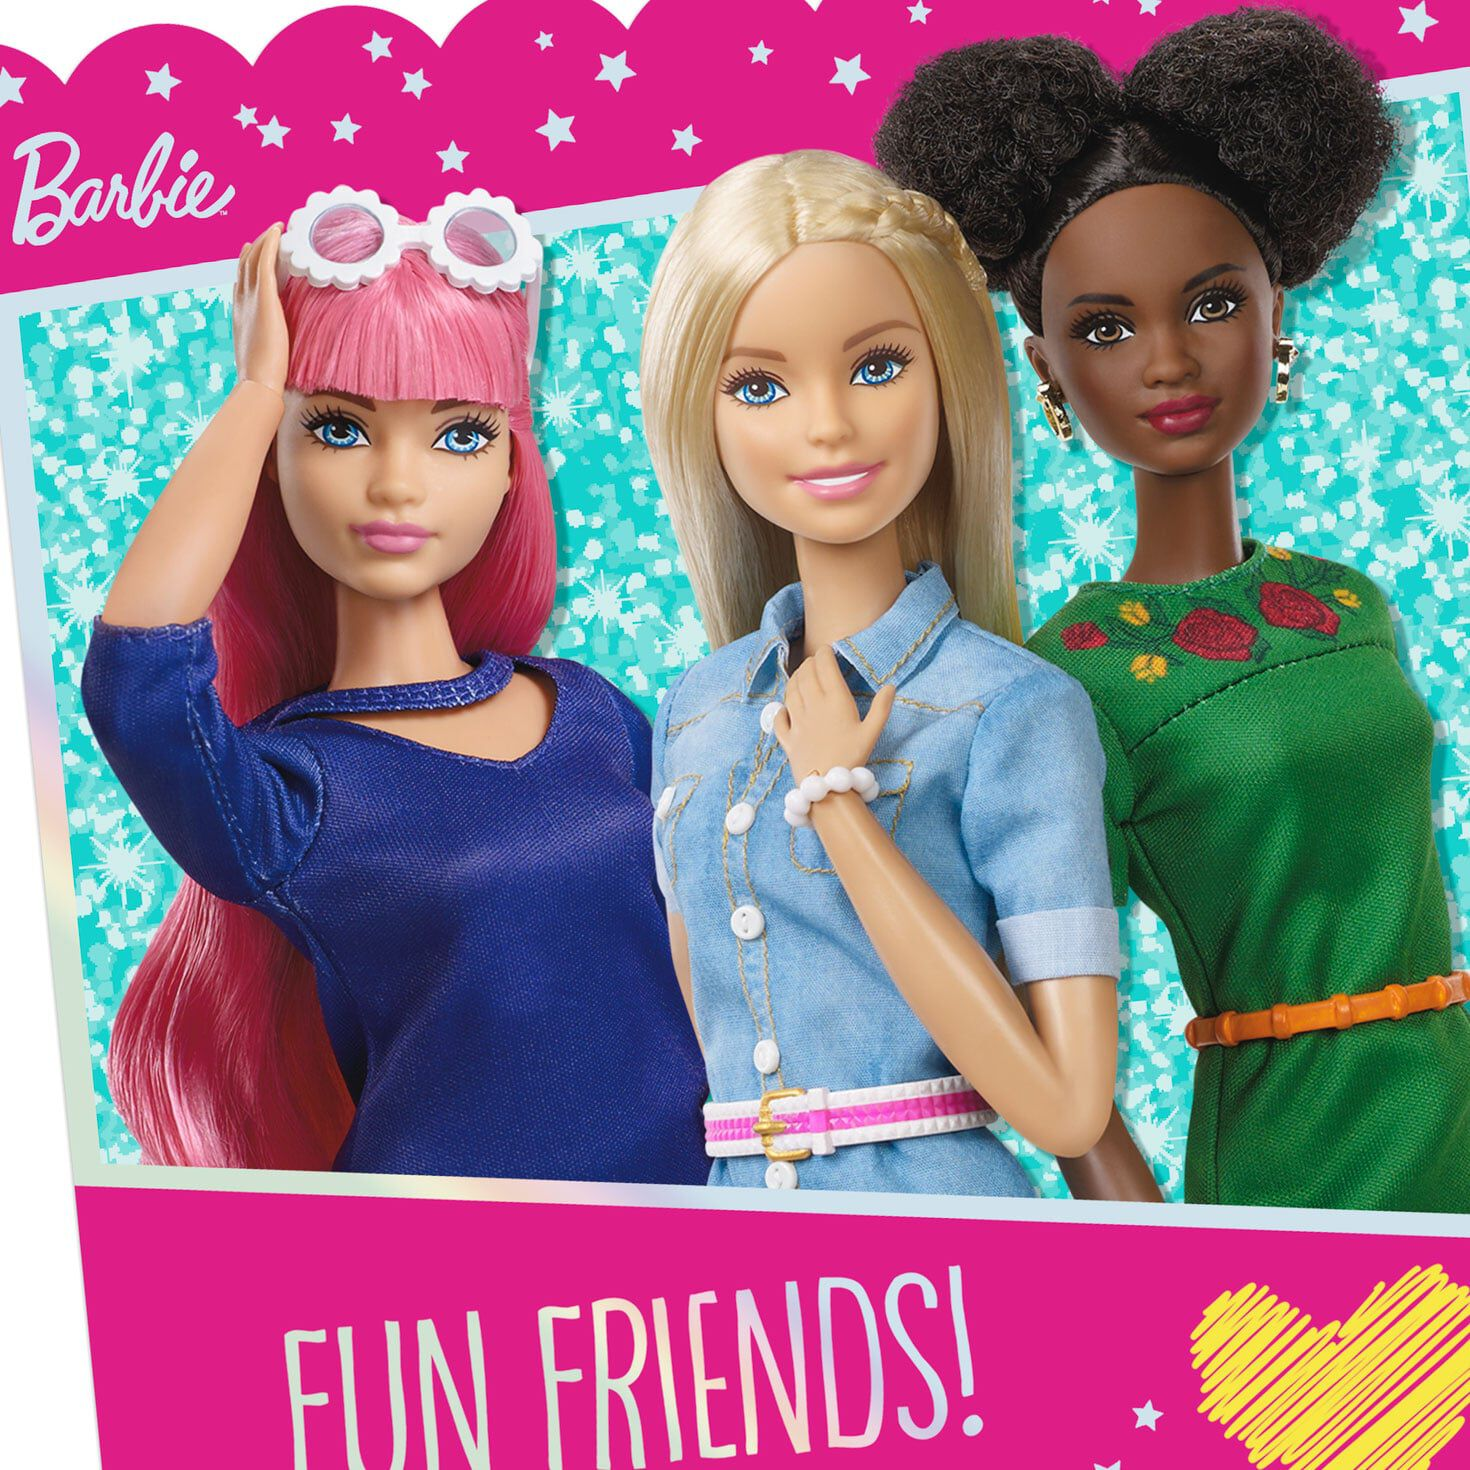 Barbie Friends Laughter And Good Times Birthday Card Greeting Cards Hallmark